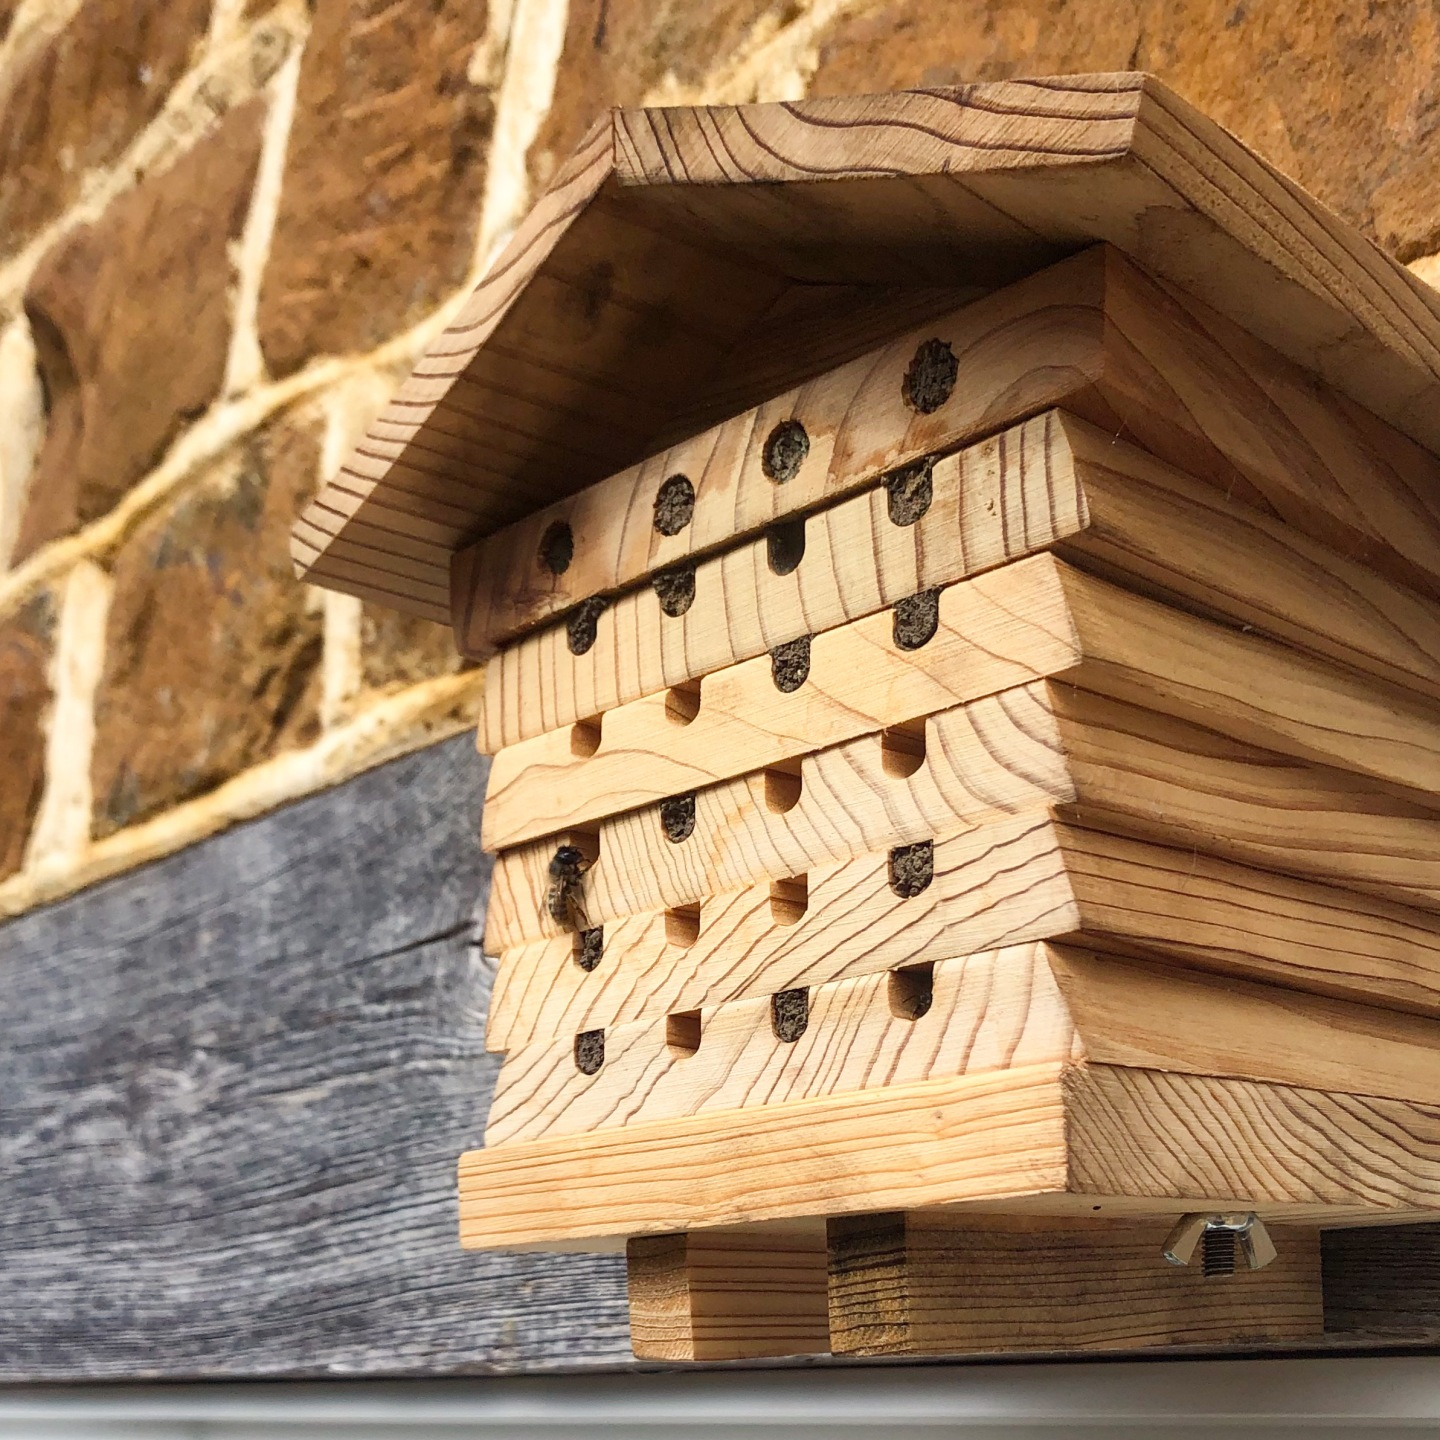 An occupied bee hotel